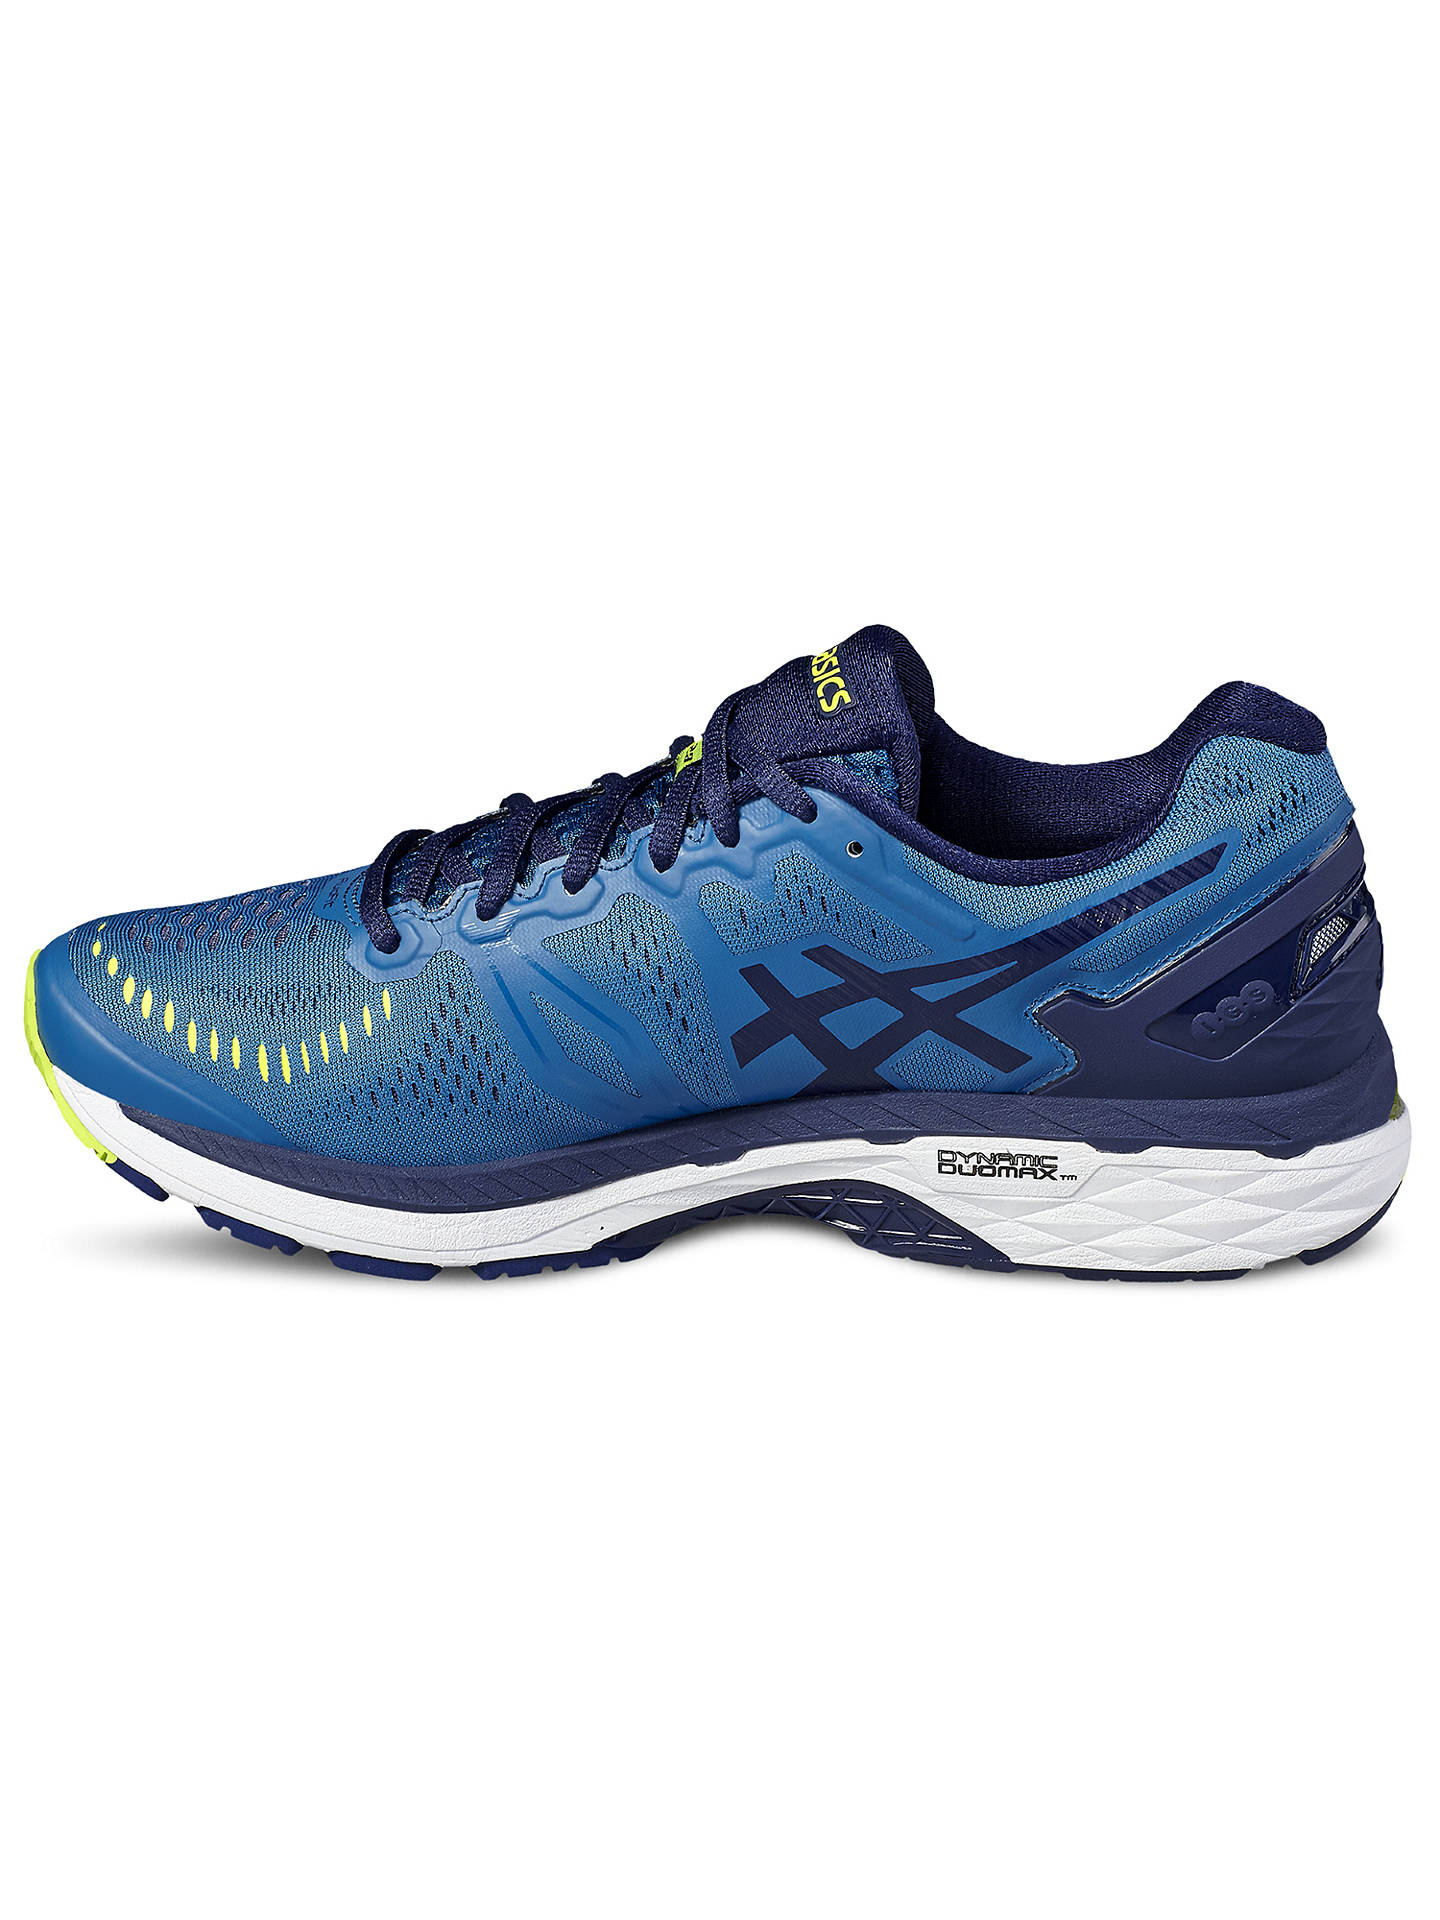 super popular f21f4 89843 Asics GEL-KAYANO 23 Men's Structured Running Shoes, Blue ...